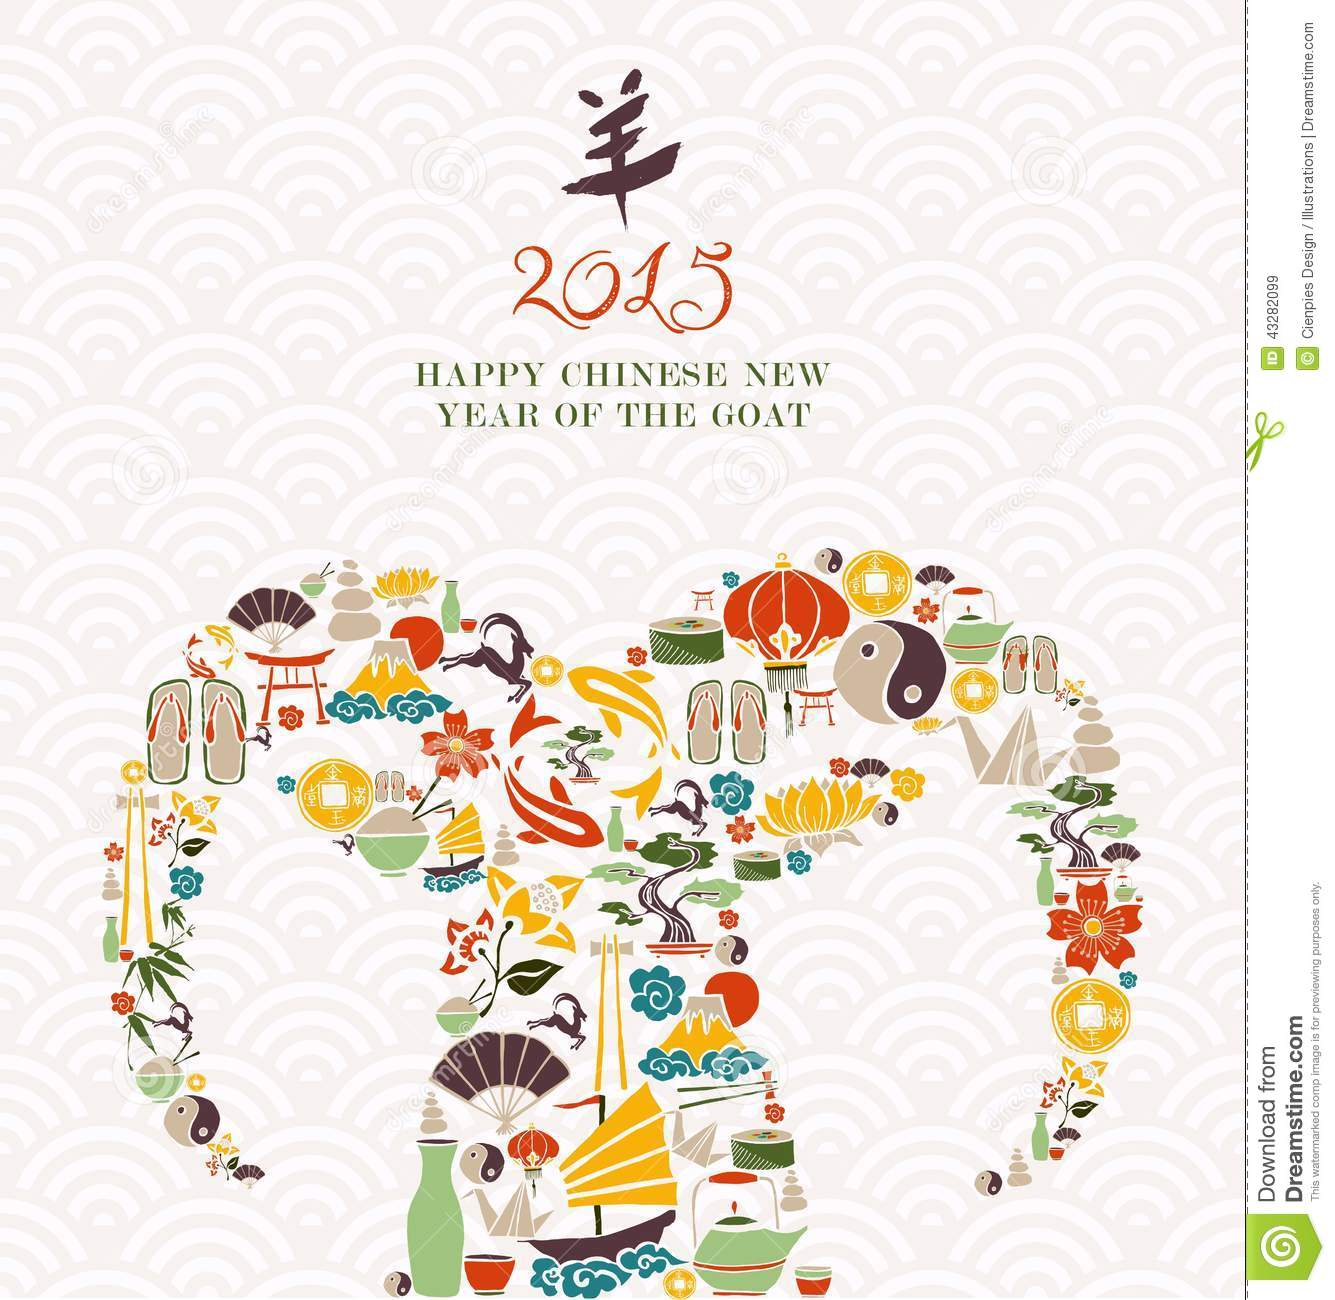 Chinese new year card decoration free vector download (31,433 free.